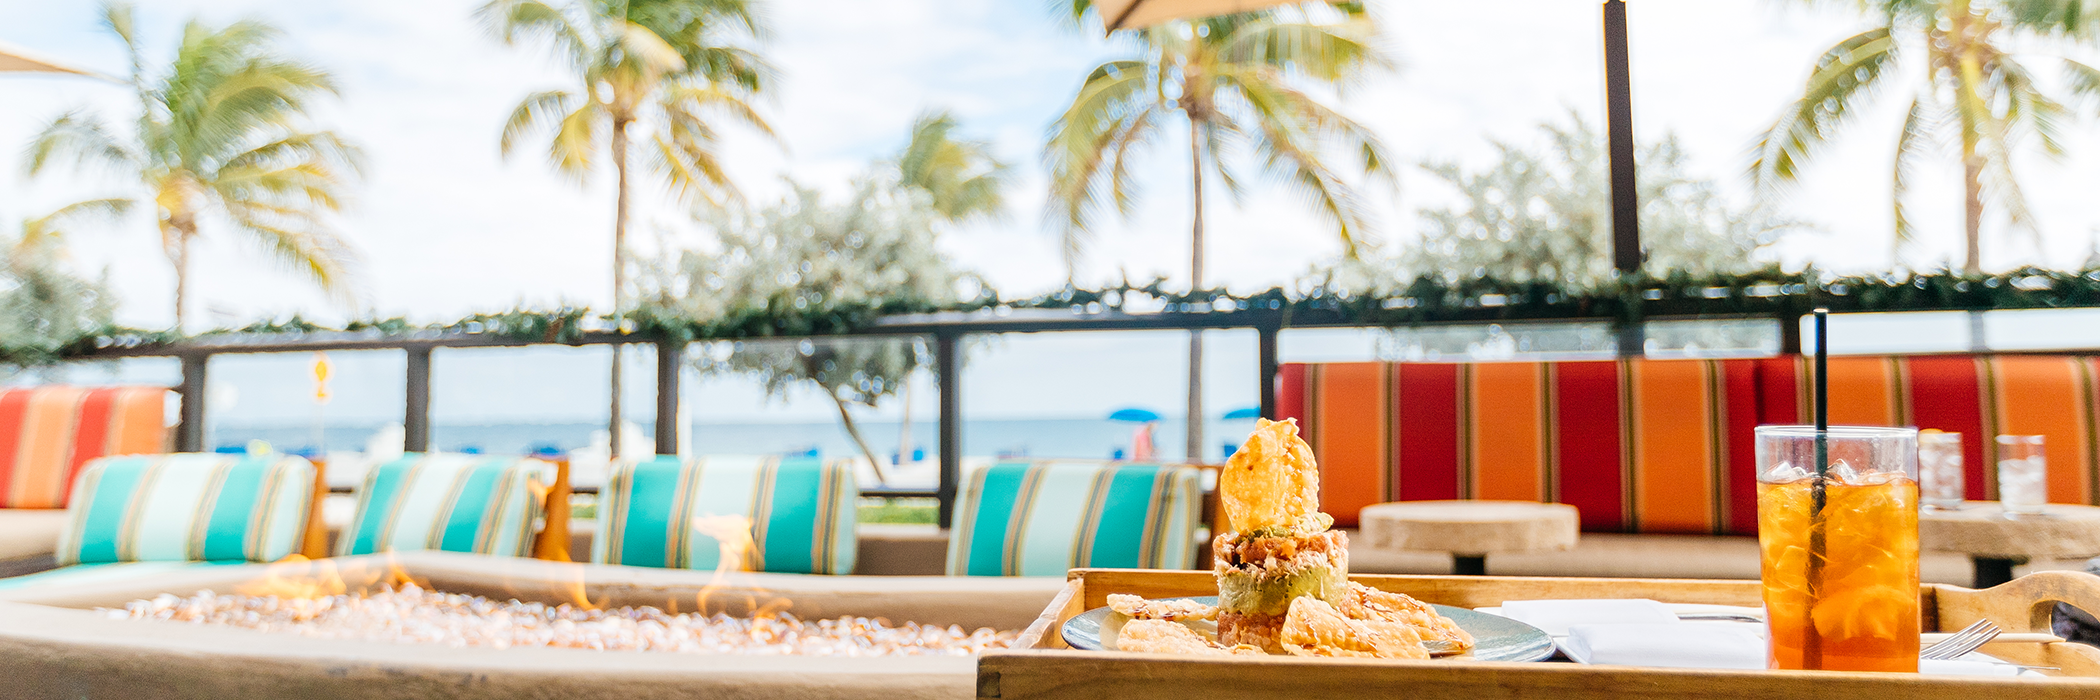 Greater Fort Lauderdale Restaurant Month | Broward County